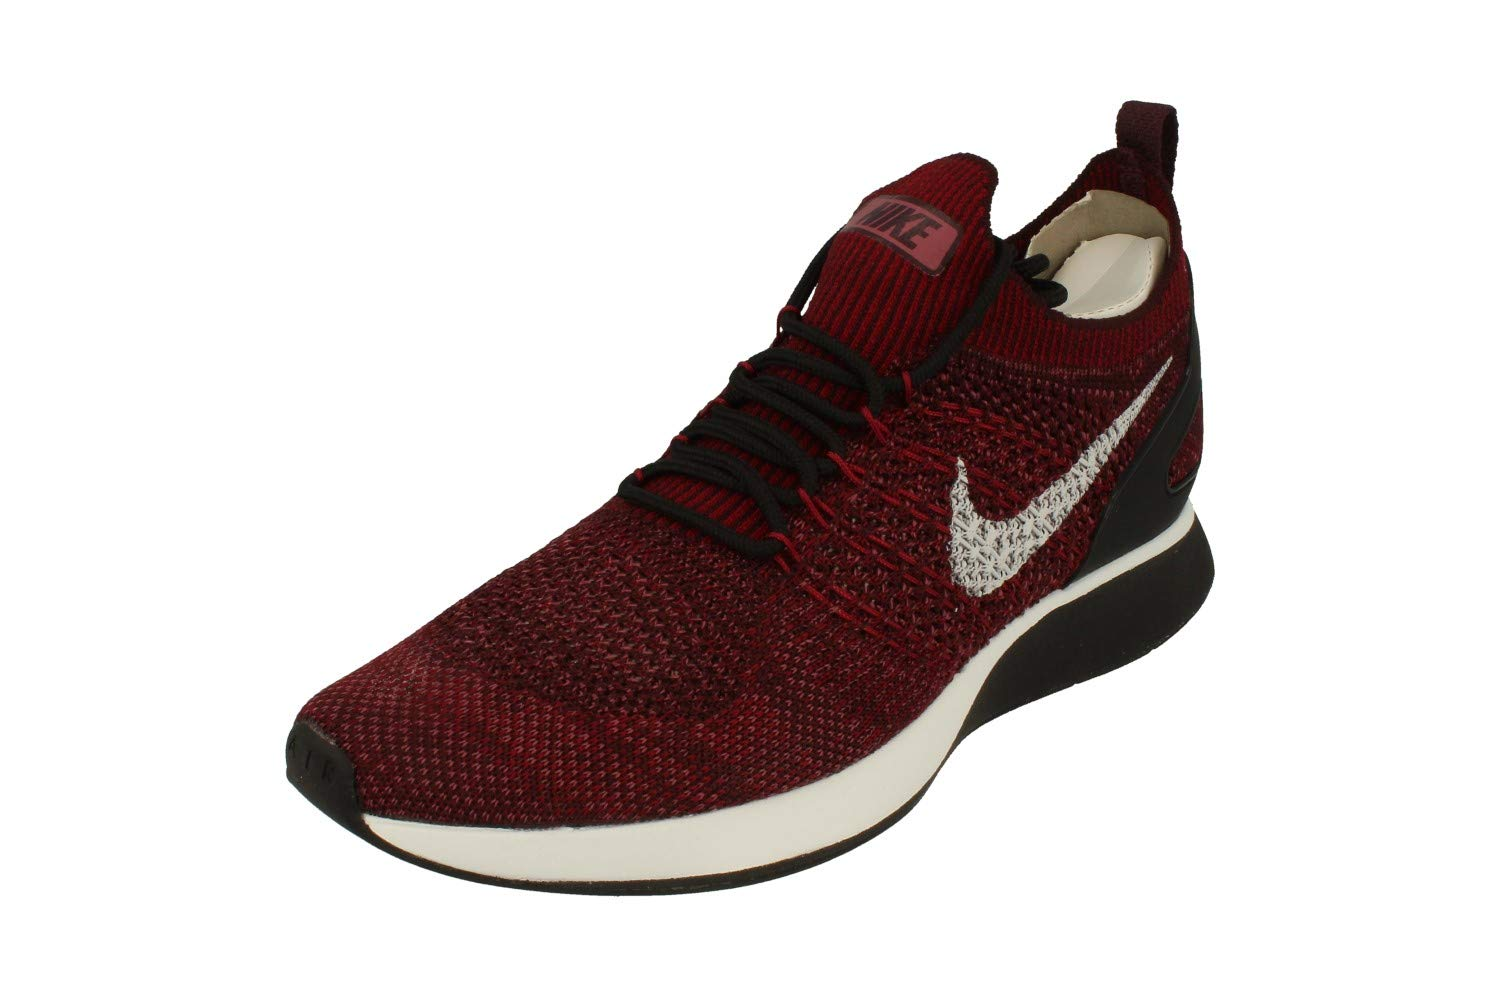 Nike Men's Air Zoom Mariah Flyknit Racer Competition Running Shoes